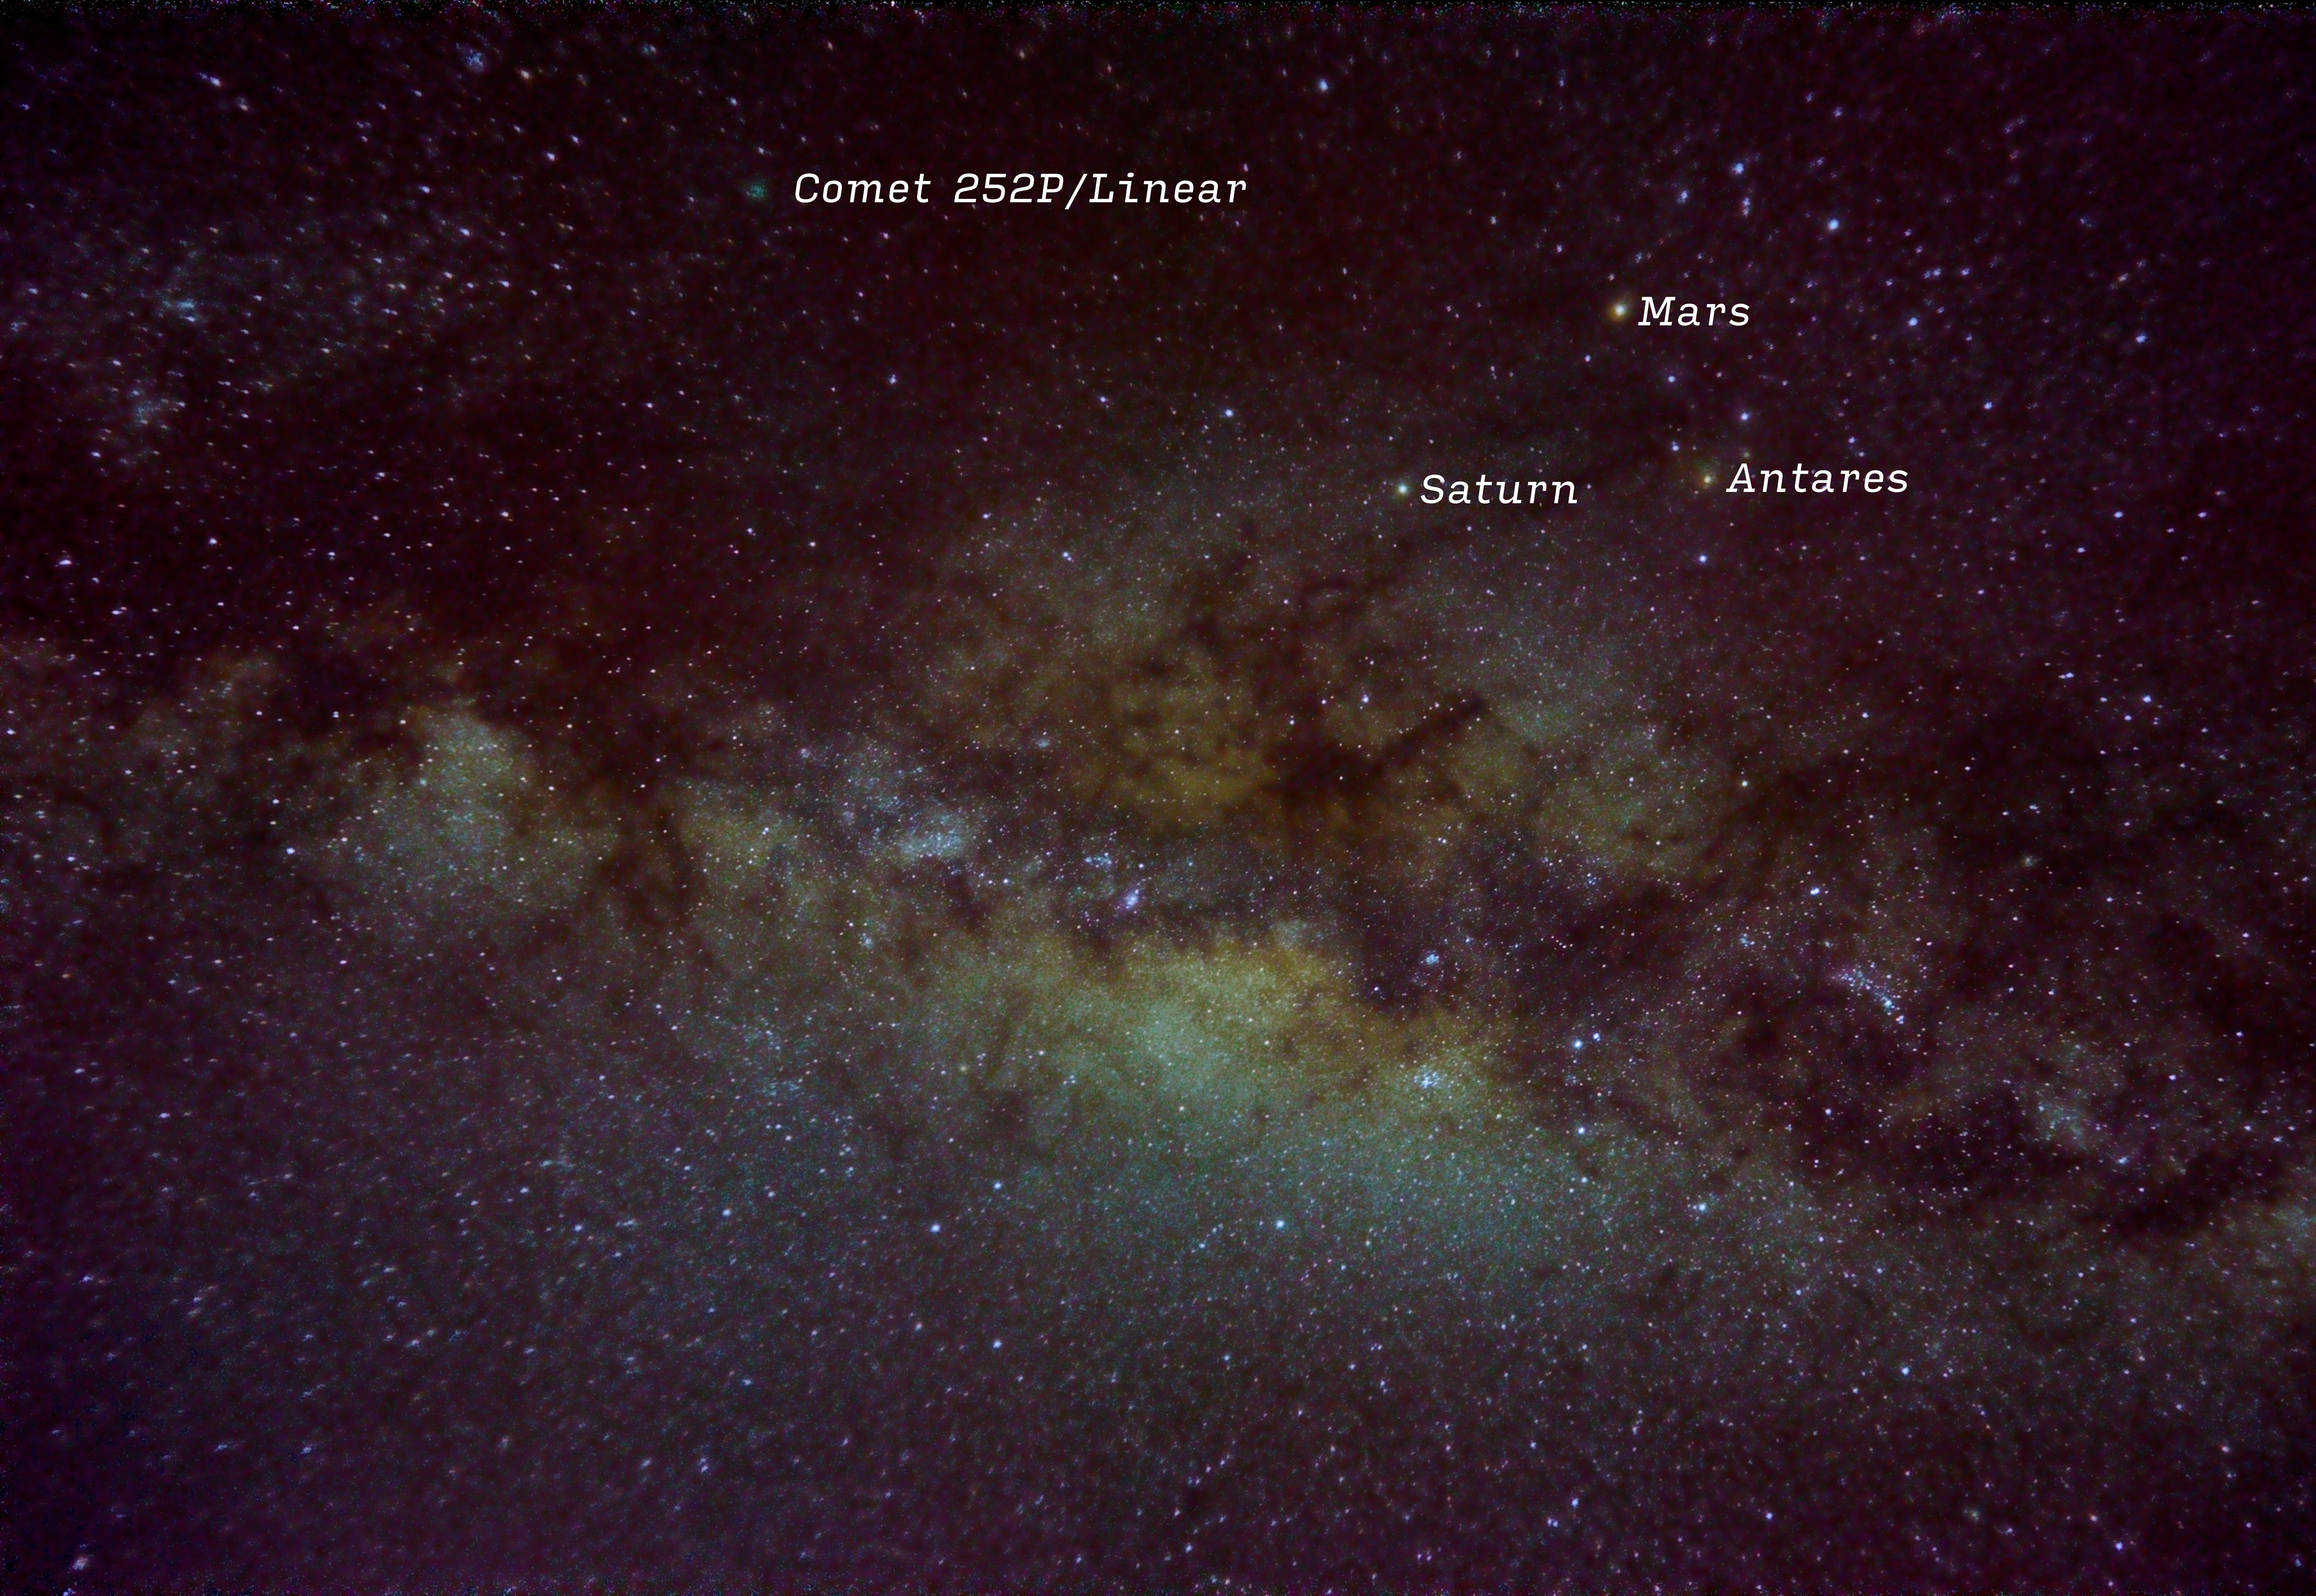 Mars, Saturn, Antares and Comet 252p/Linear by Tom Harper